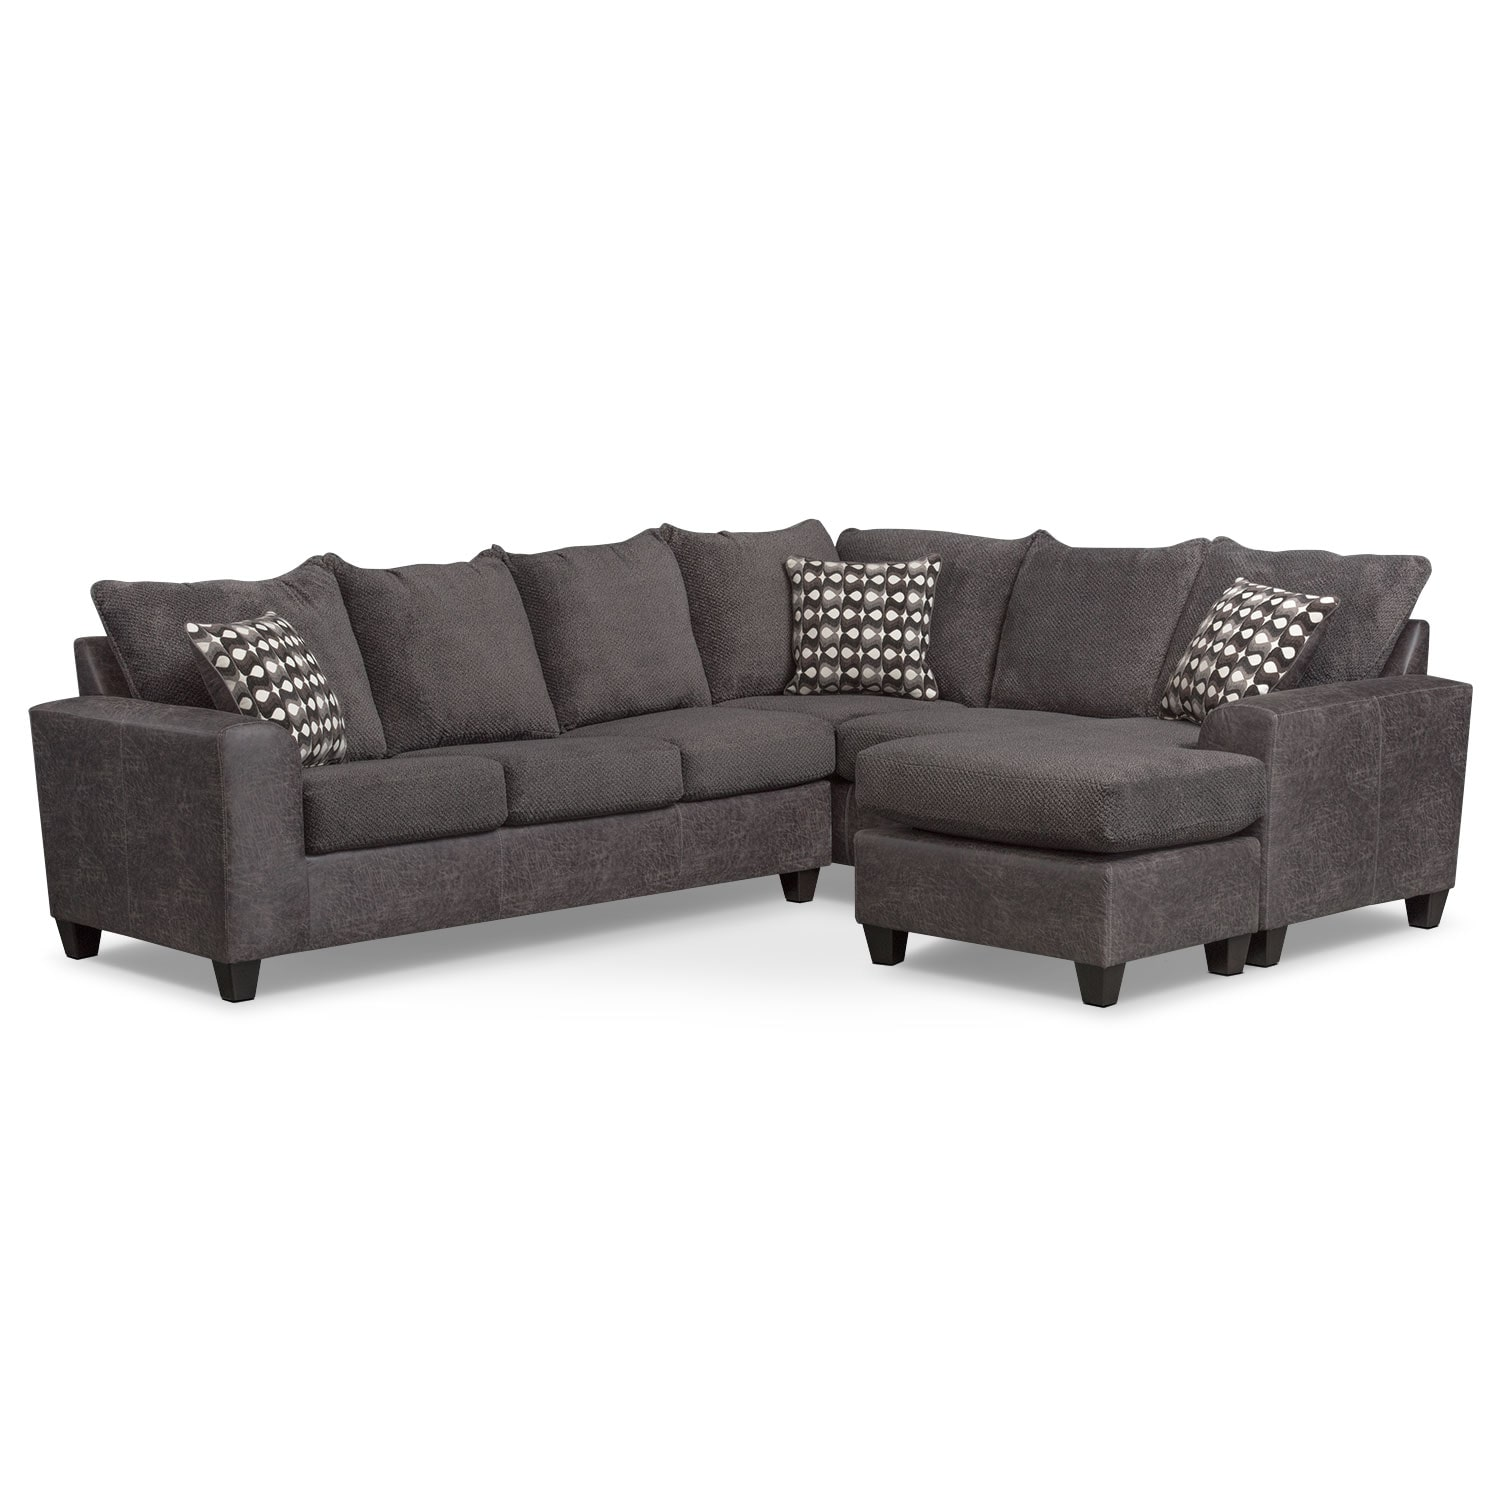 Brando 3 piece sectional with modular chaise smoke for 3 piece sectional with chaise